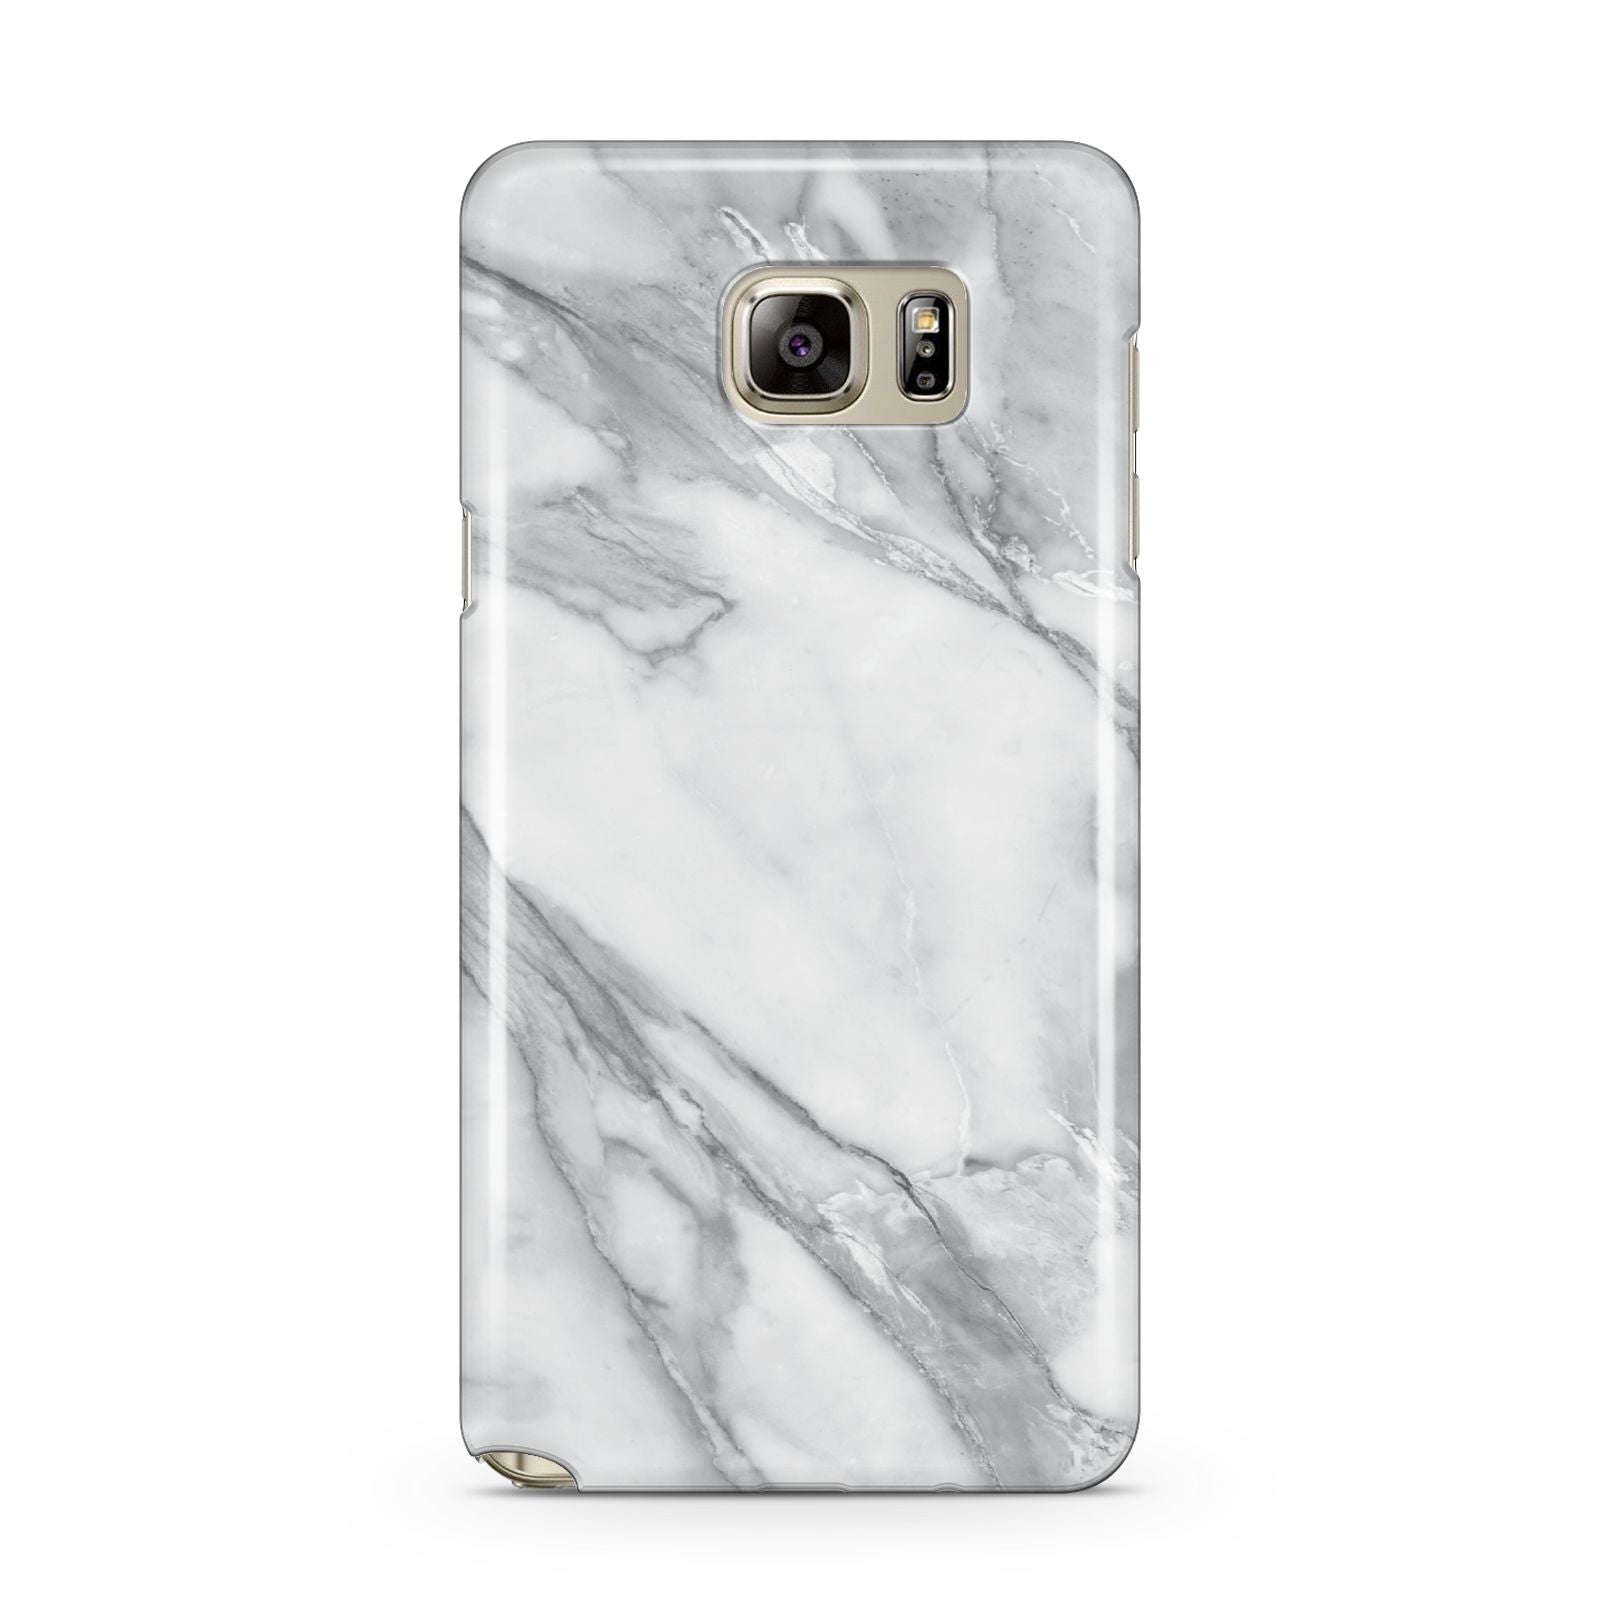 Faux Marble Effect White Grey Samsung Galaxy Note 5 Case